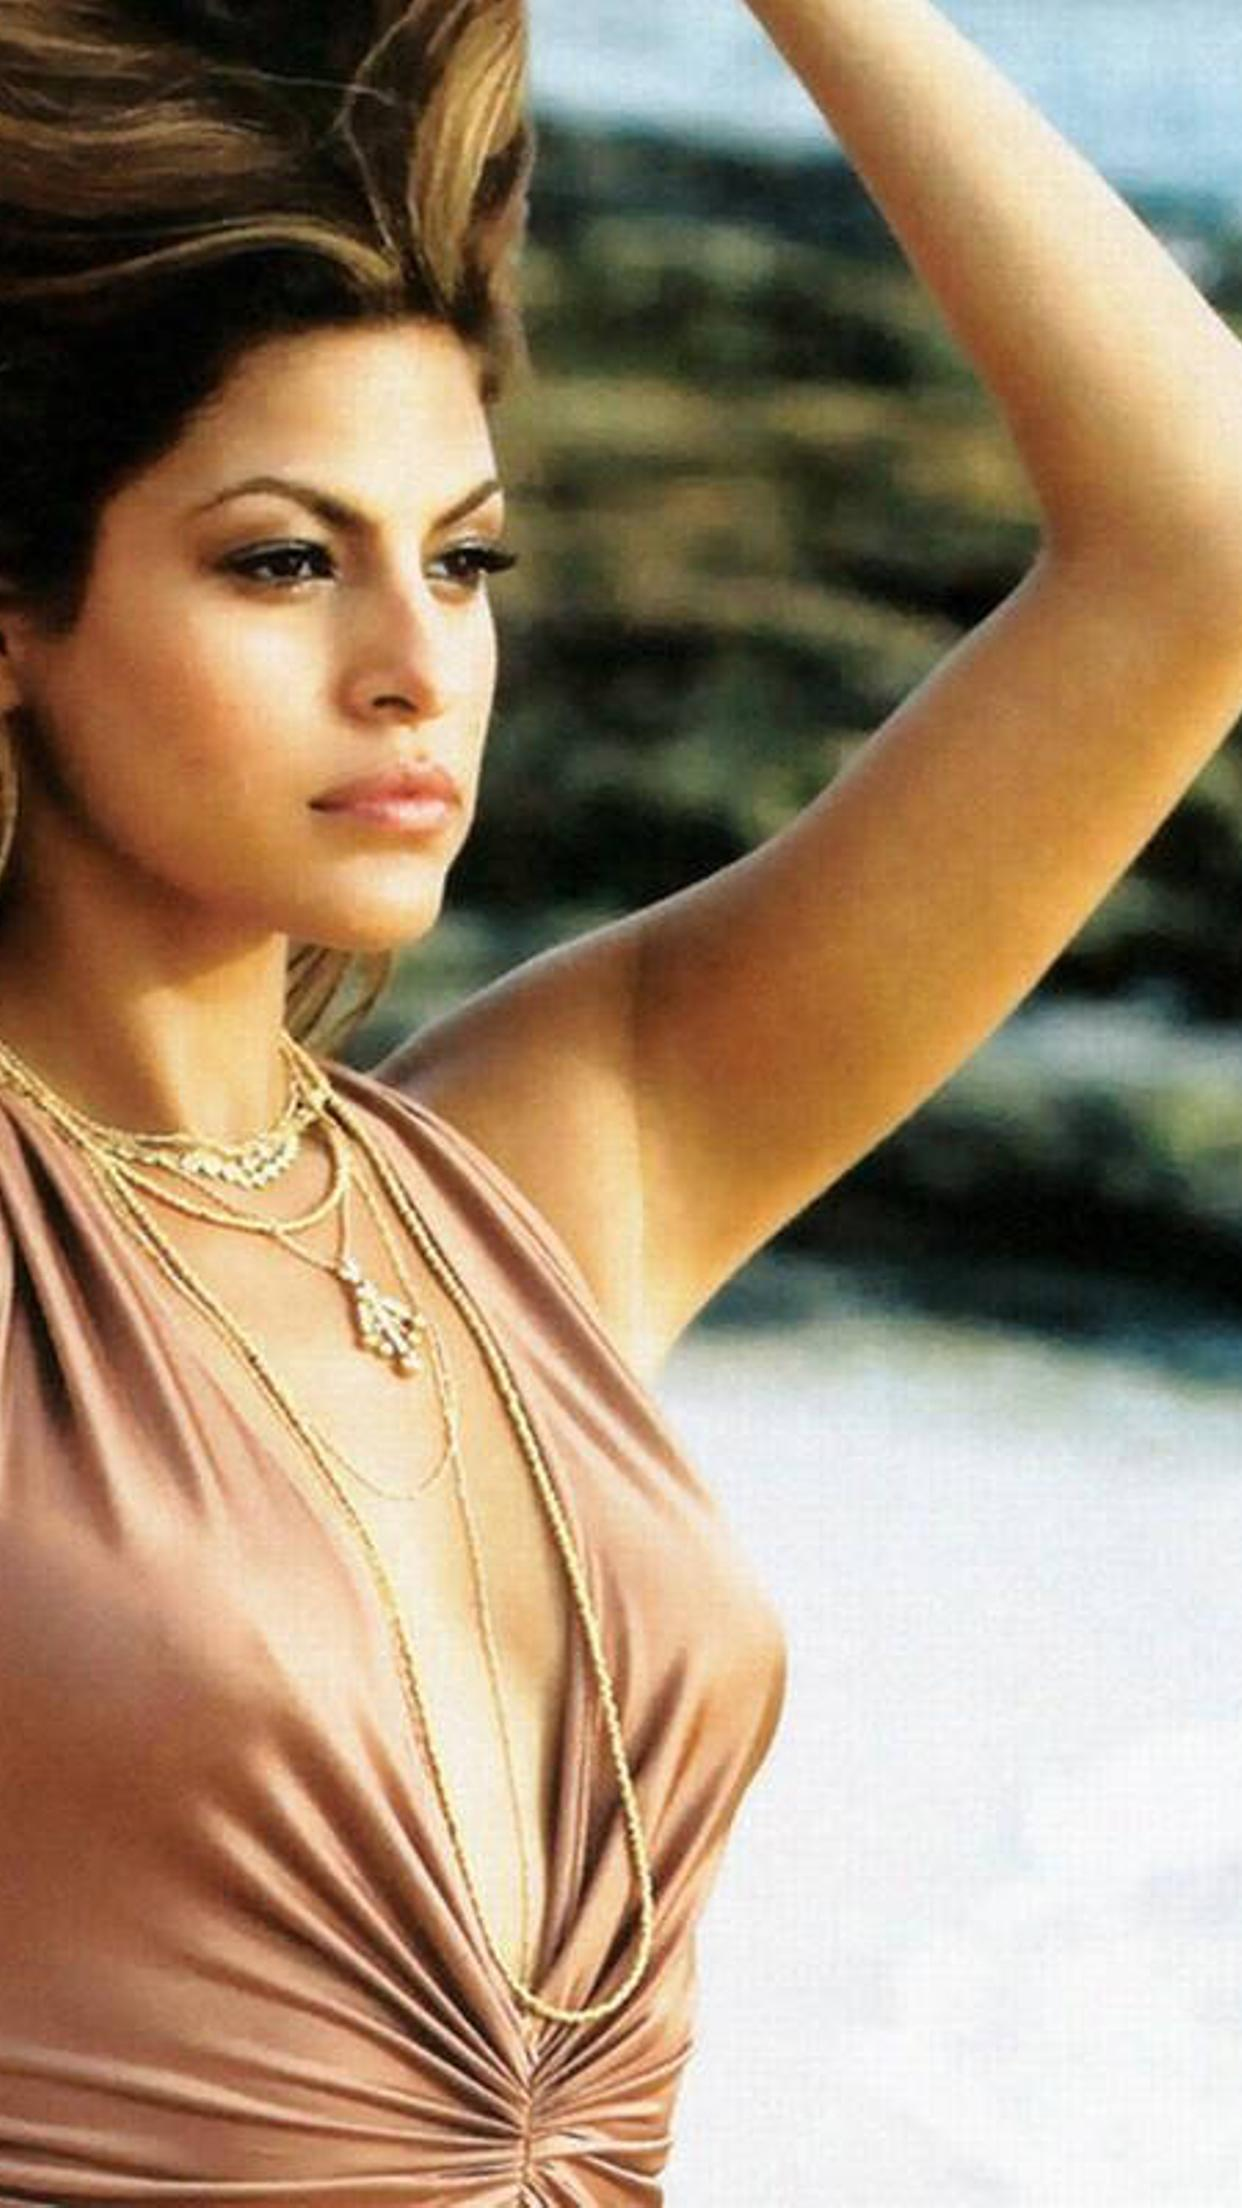 eva mendes with hair in the wind on the beach wallpaper download